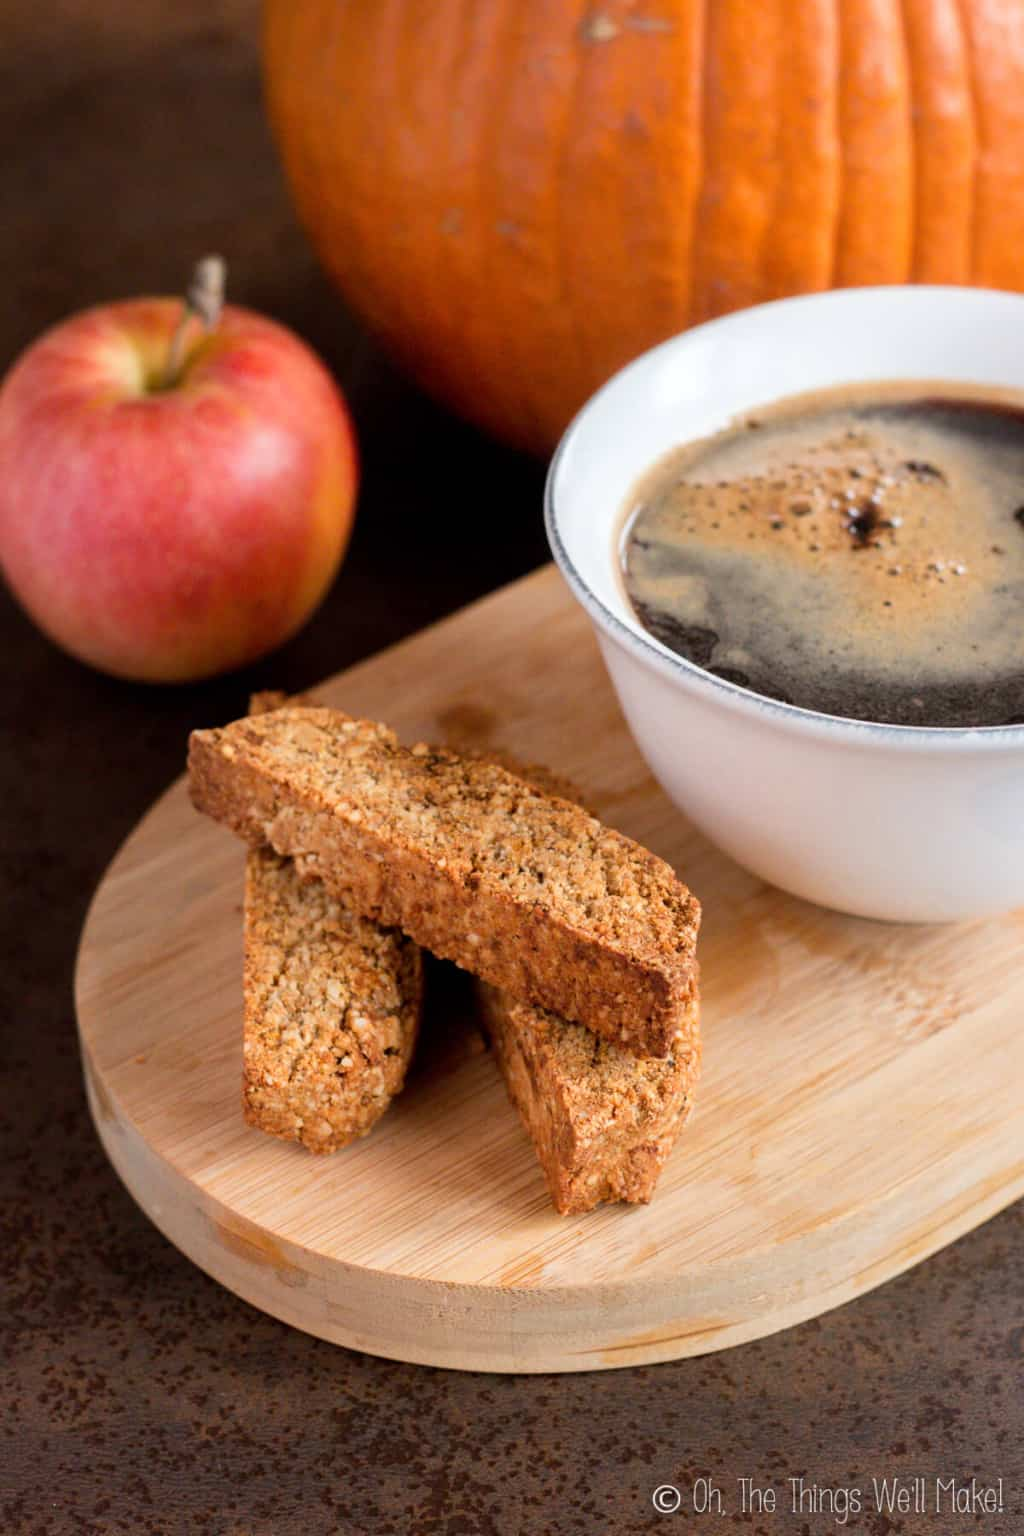 Three pumpkin spice biscotti on a wooden board with a cup of coffee on the side, and an apple in the background.